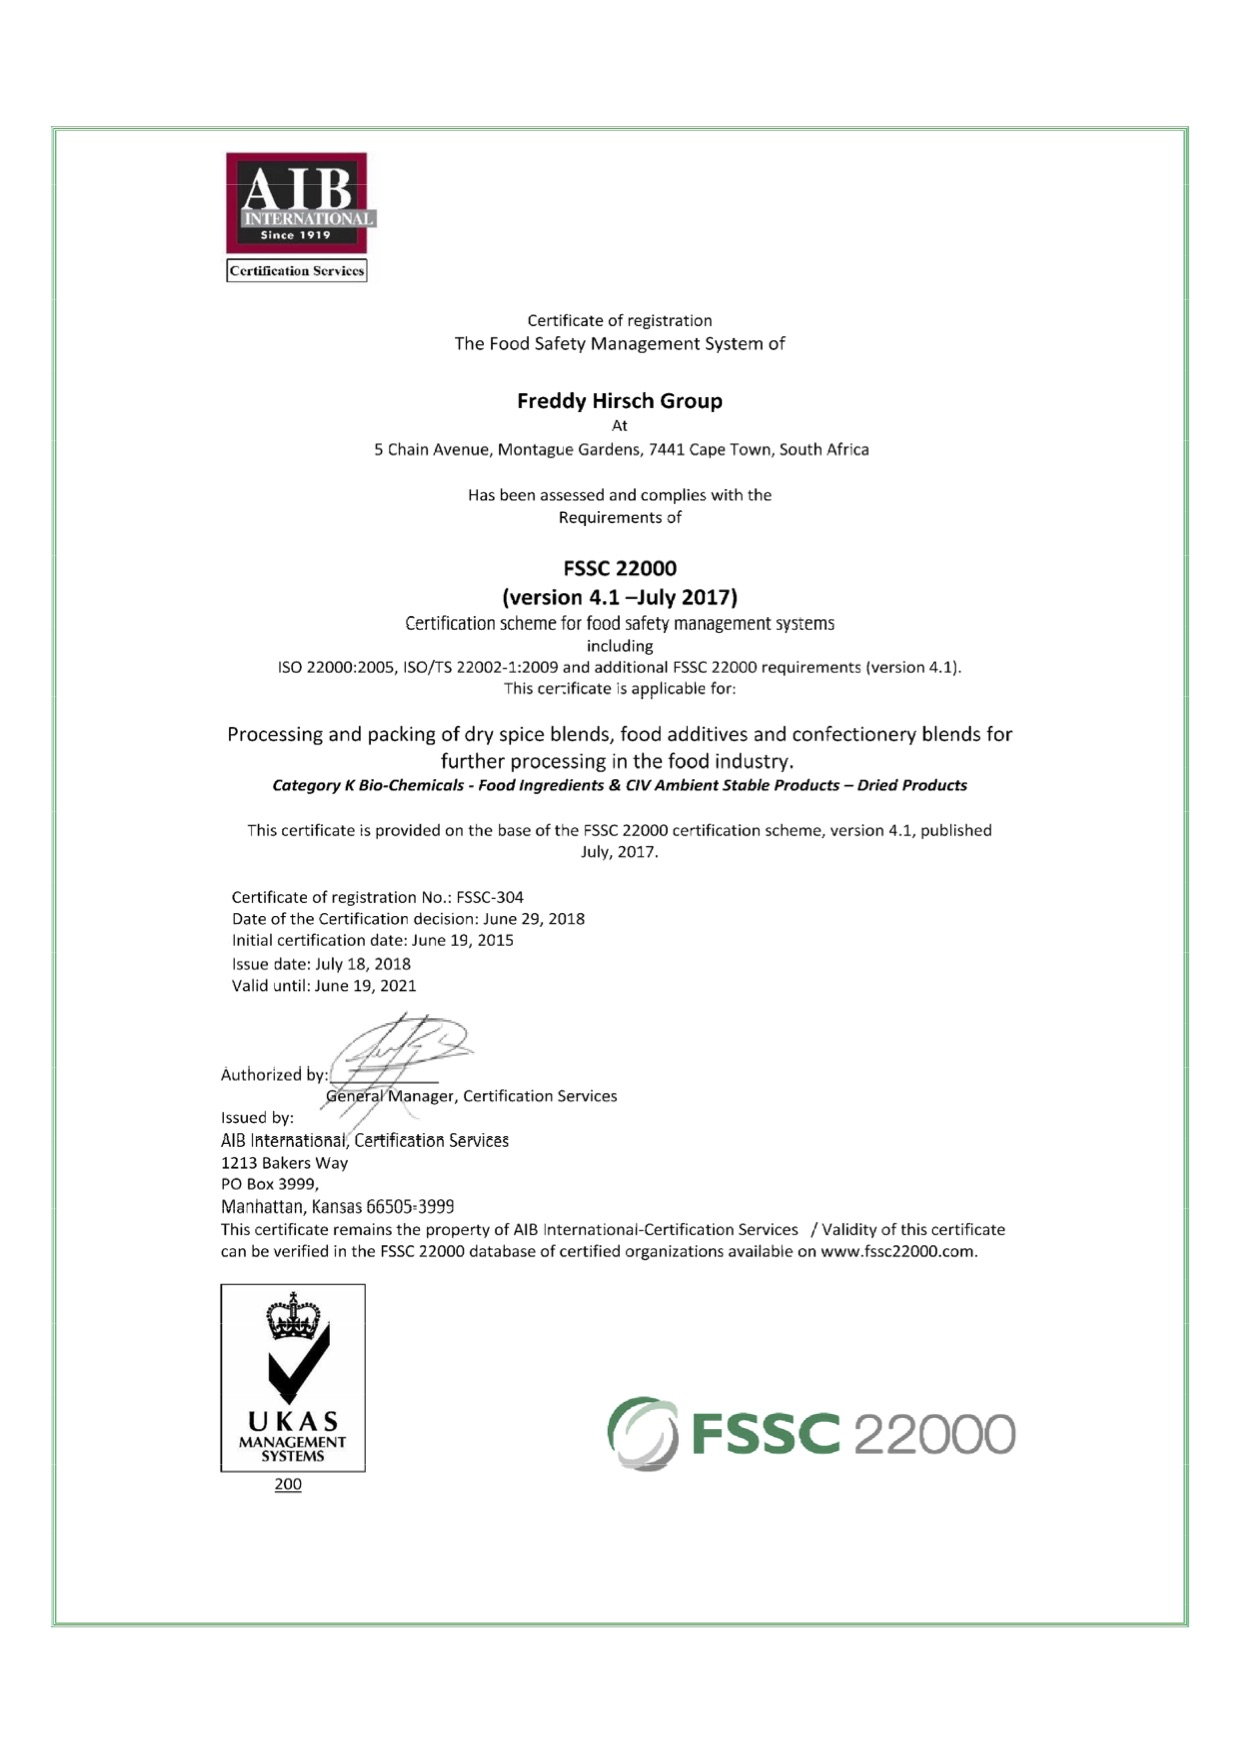 FSSC 22000 CERTIFICATE FROM AIB INTERNATIONAL CERTIFICATION SERVICES